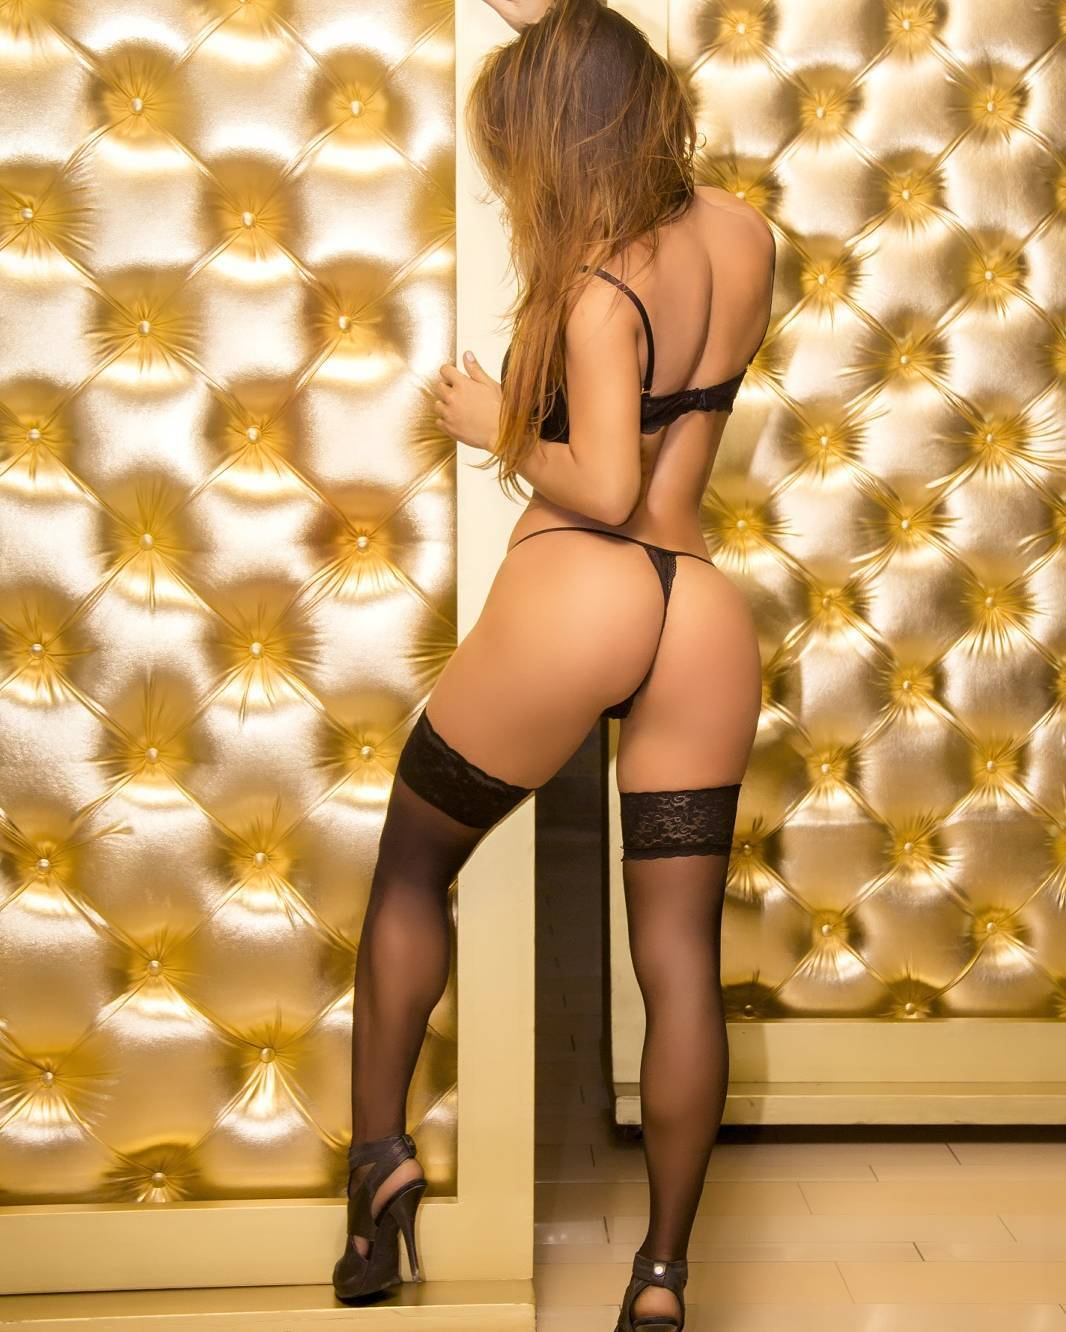 Hot Tanga Photos Of Vivi Castrillon - Hot Tanga Photos Of Vivi Castrillon